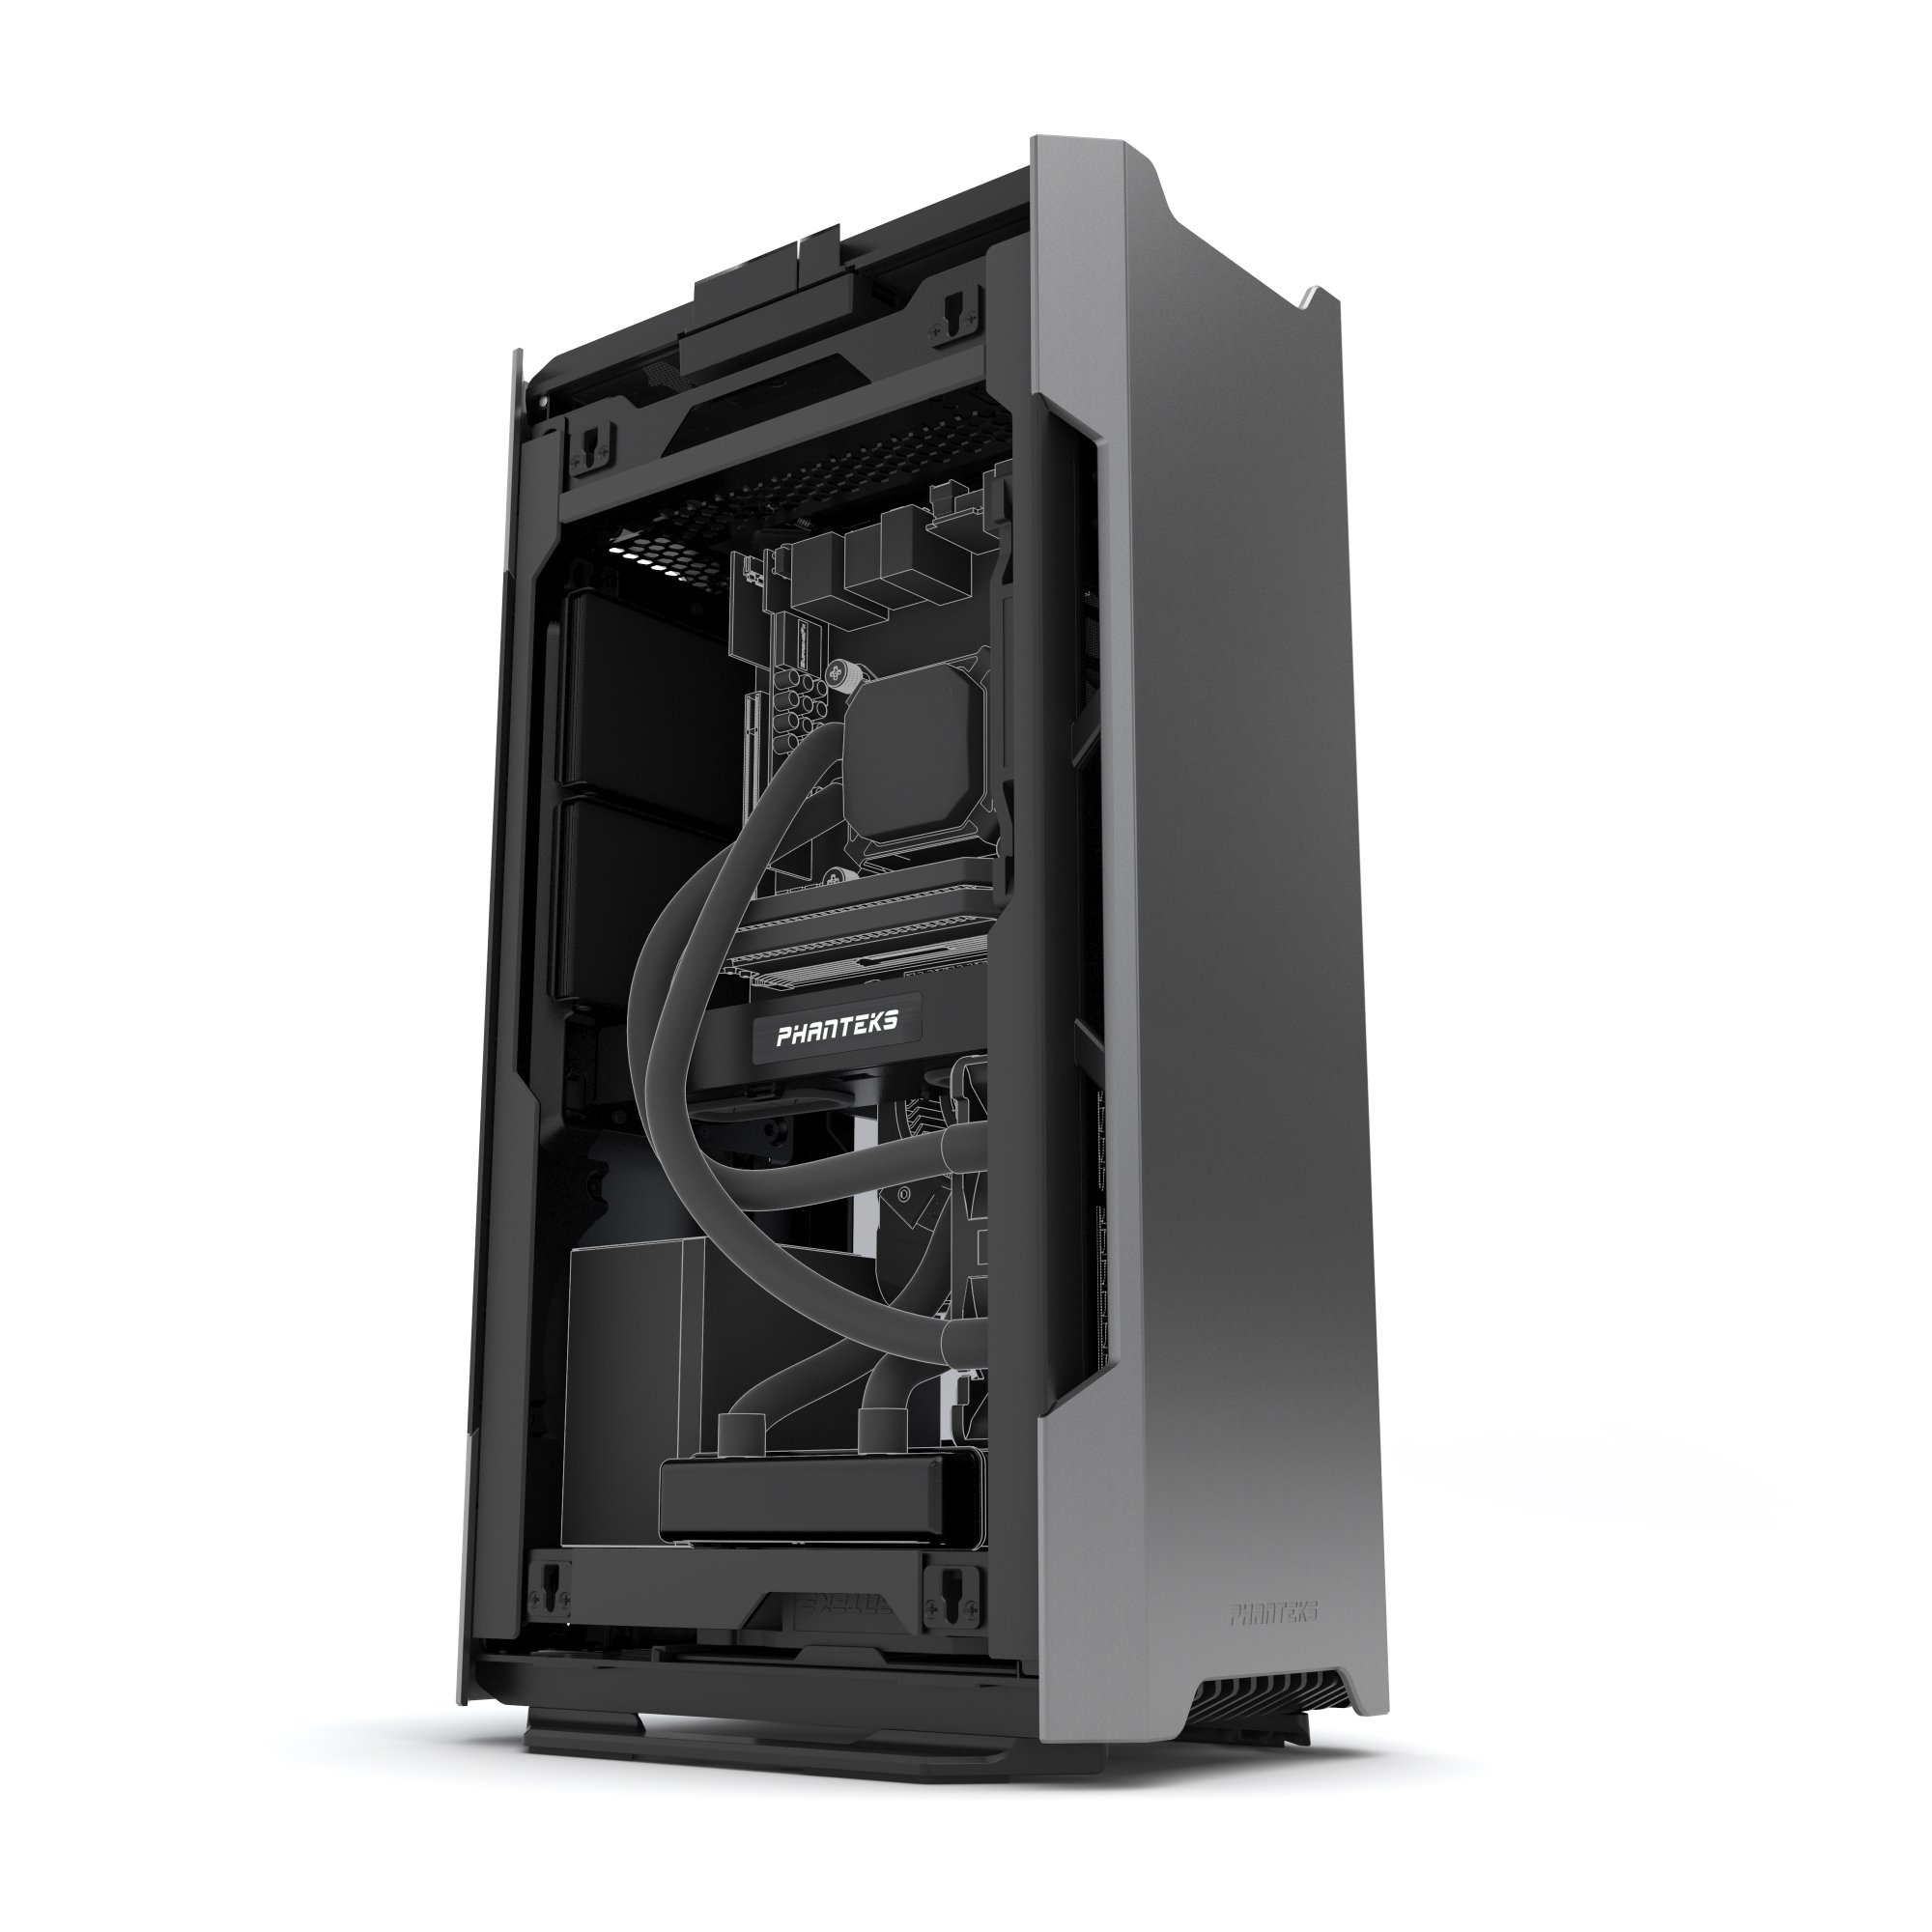 Phanteks PH-ES217E_AG EVOLV SHIFT Mini ITX Dual Tempered Glass for AIO water cooling Anthracite Gray Cases by Phanteks (Image #7)